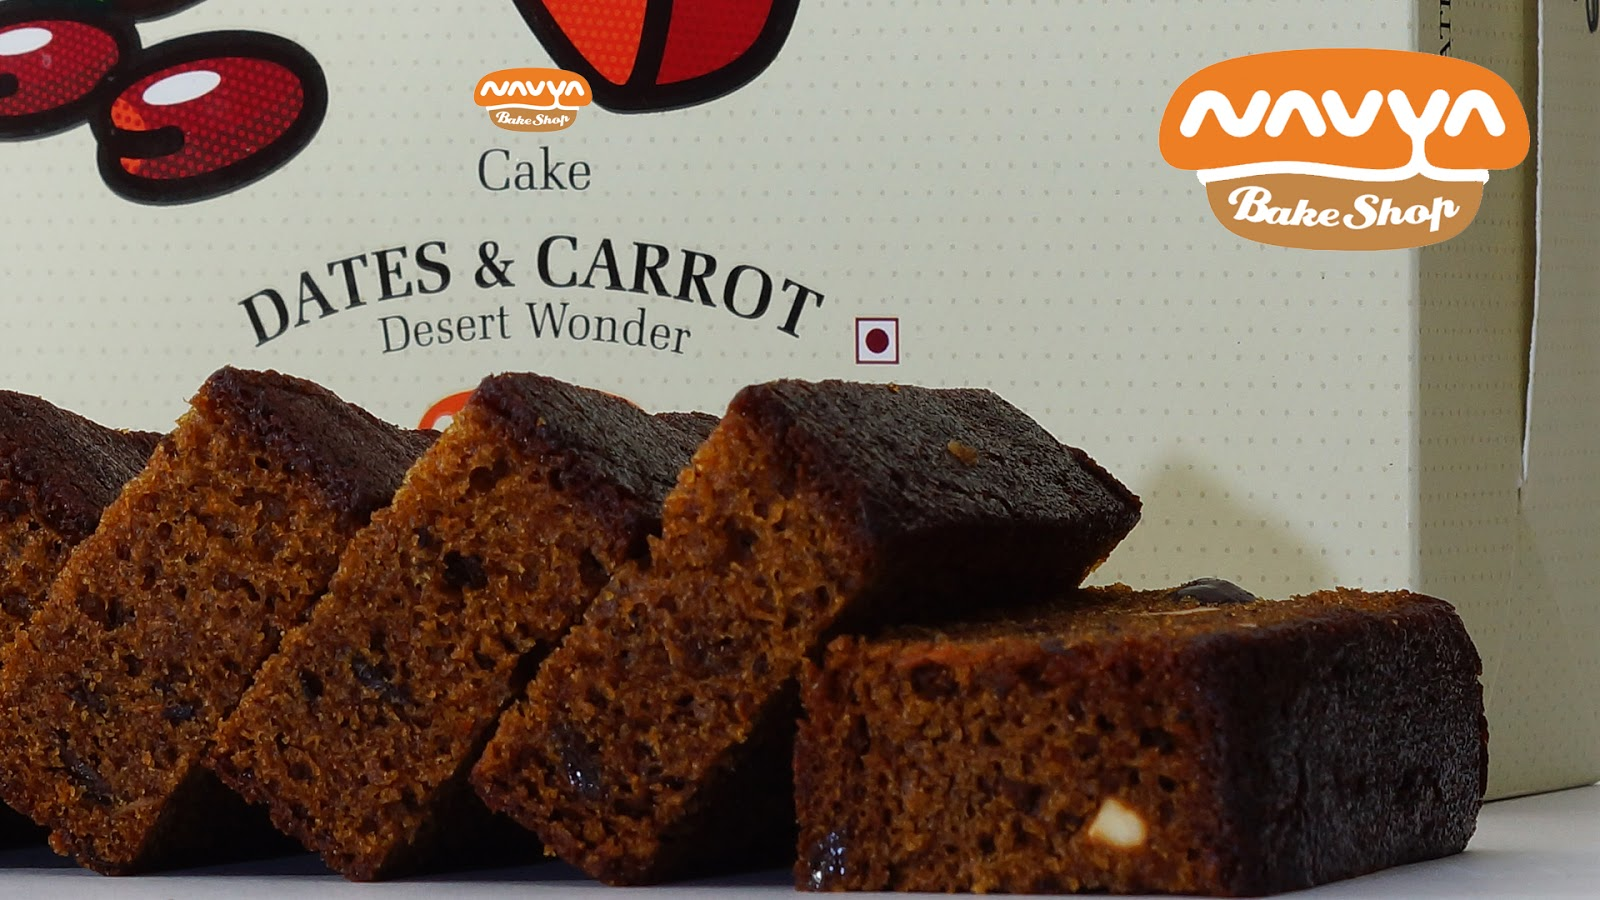 Online Cake Buy Cakes Online Cochin Dates And Carrot Cake Navya Bake Shop